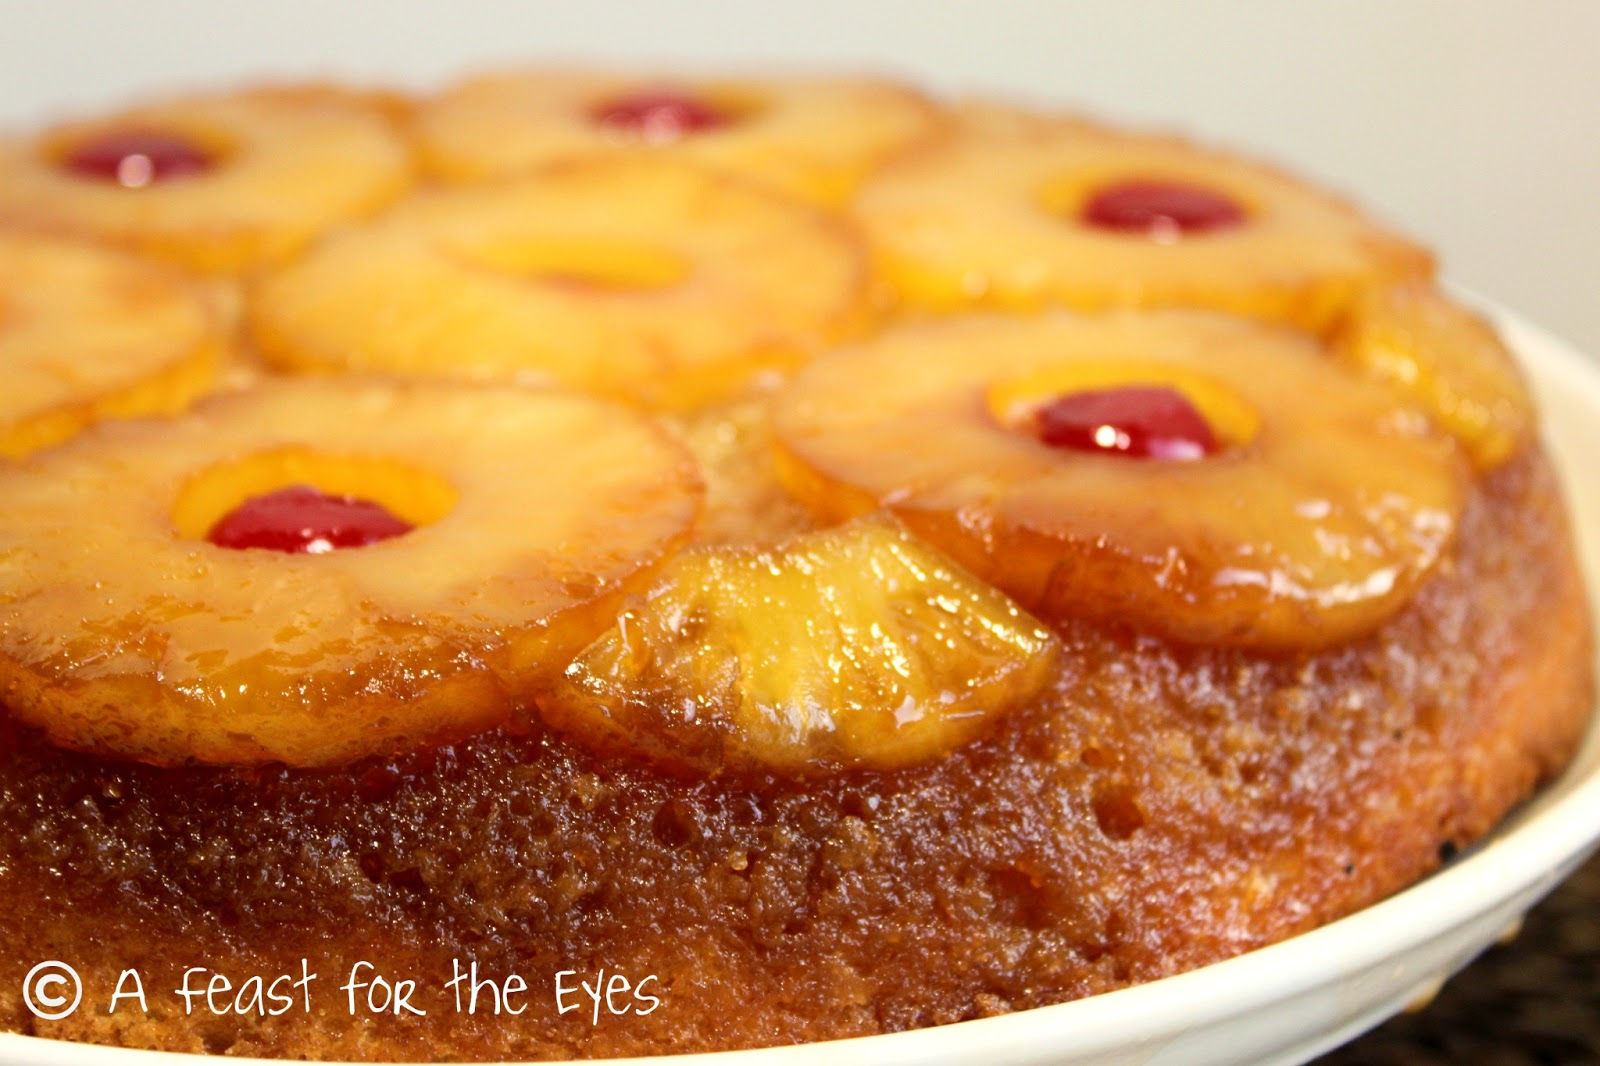 Feast for the Eyes: Pineapple Upside Down Cake (with a little rum)